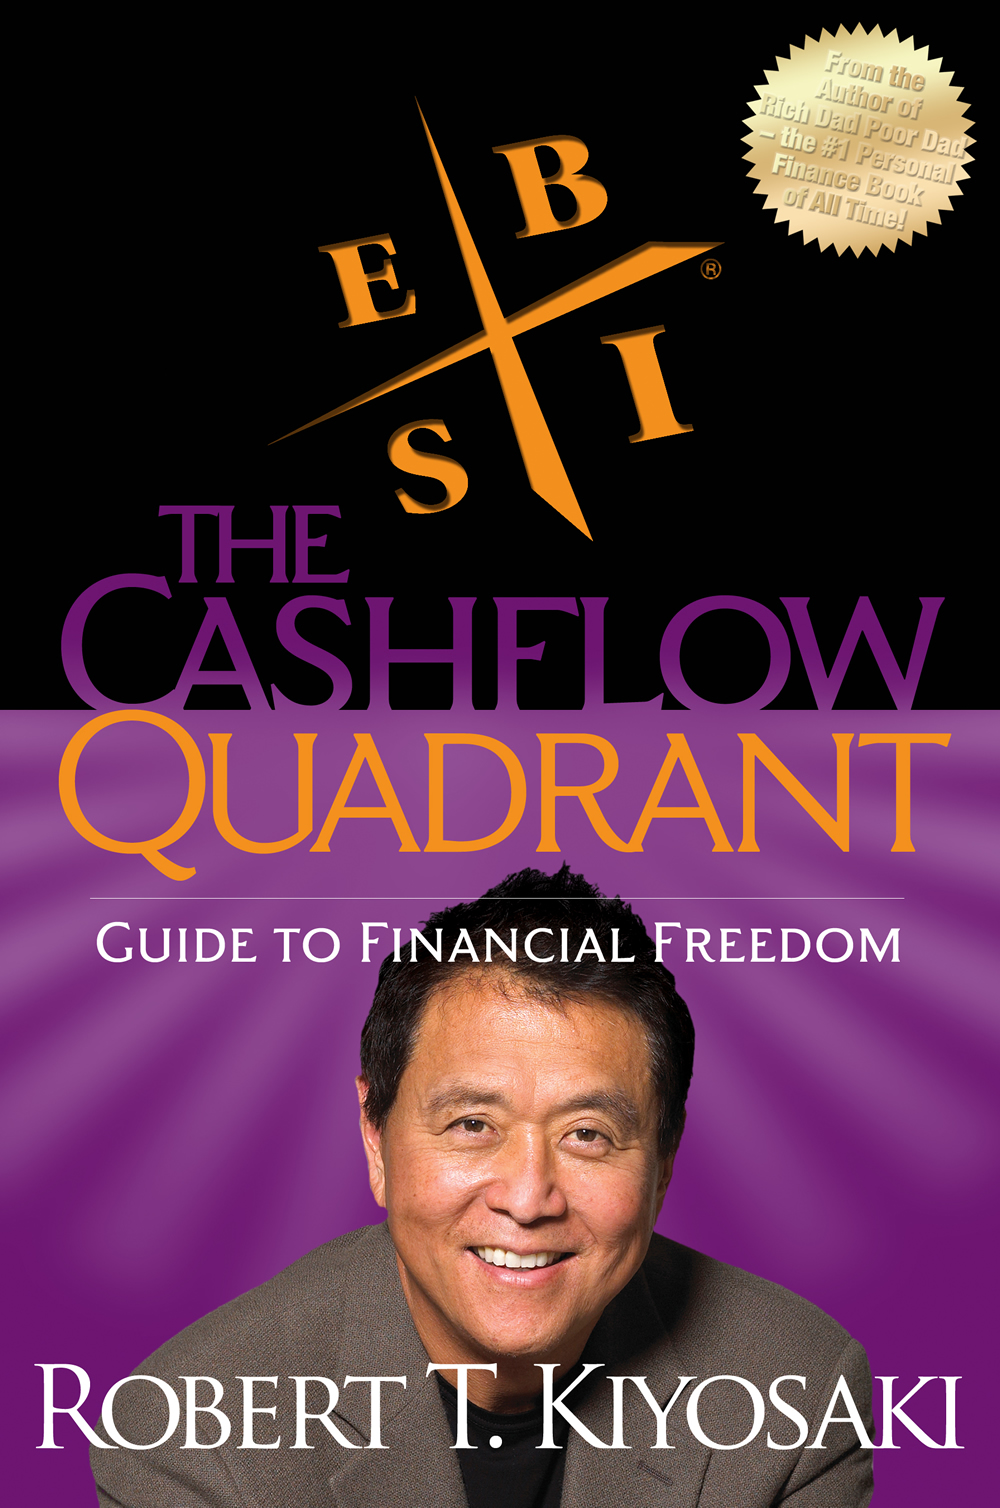 Rich Dad's Cashflow Quadrant: Rich Dad's Guide to Financial Freedom -  Robert T. Kiyosaki - quotes, rating, reviews, where to buy